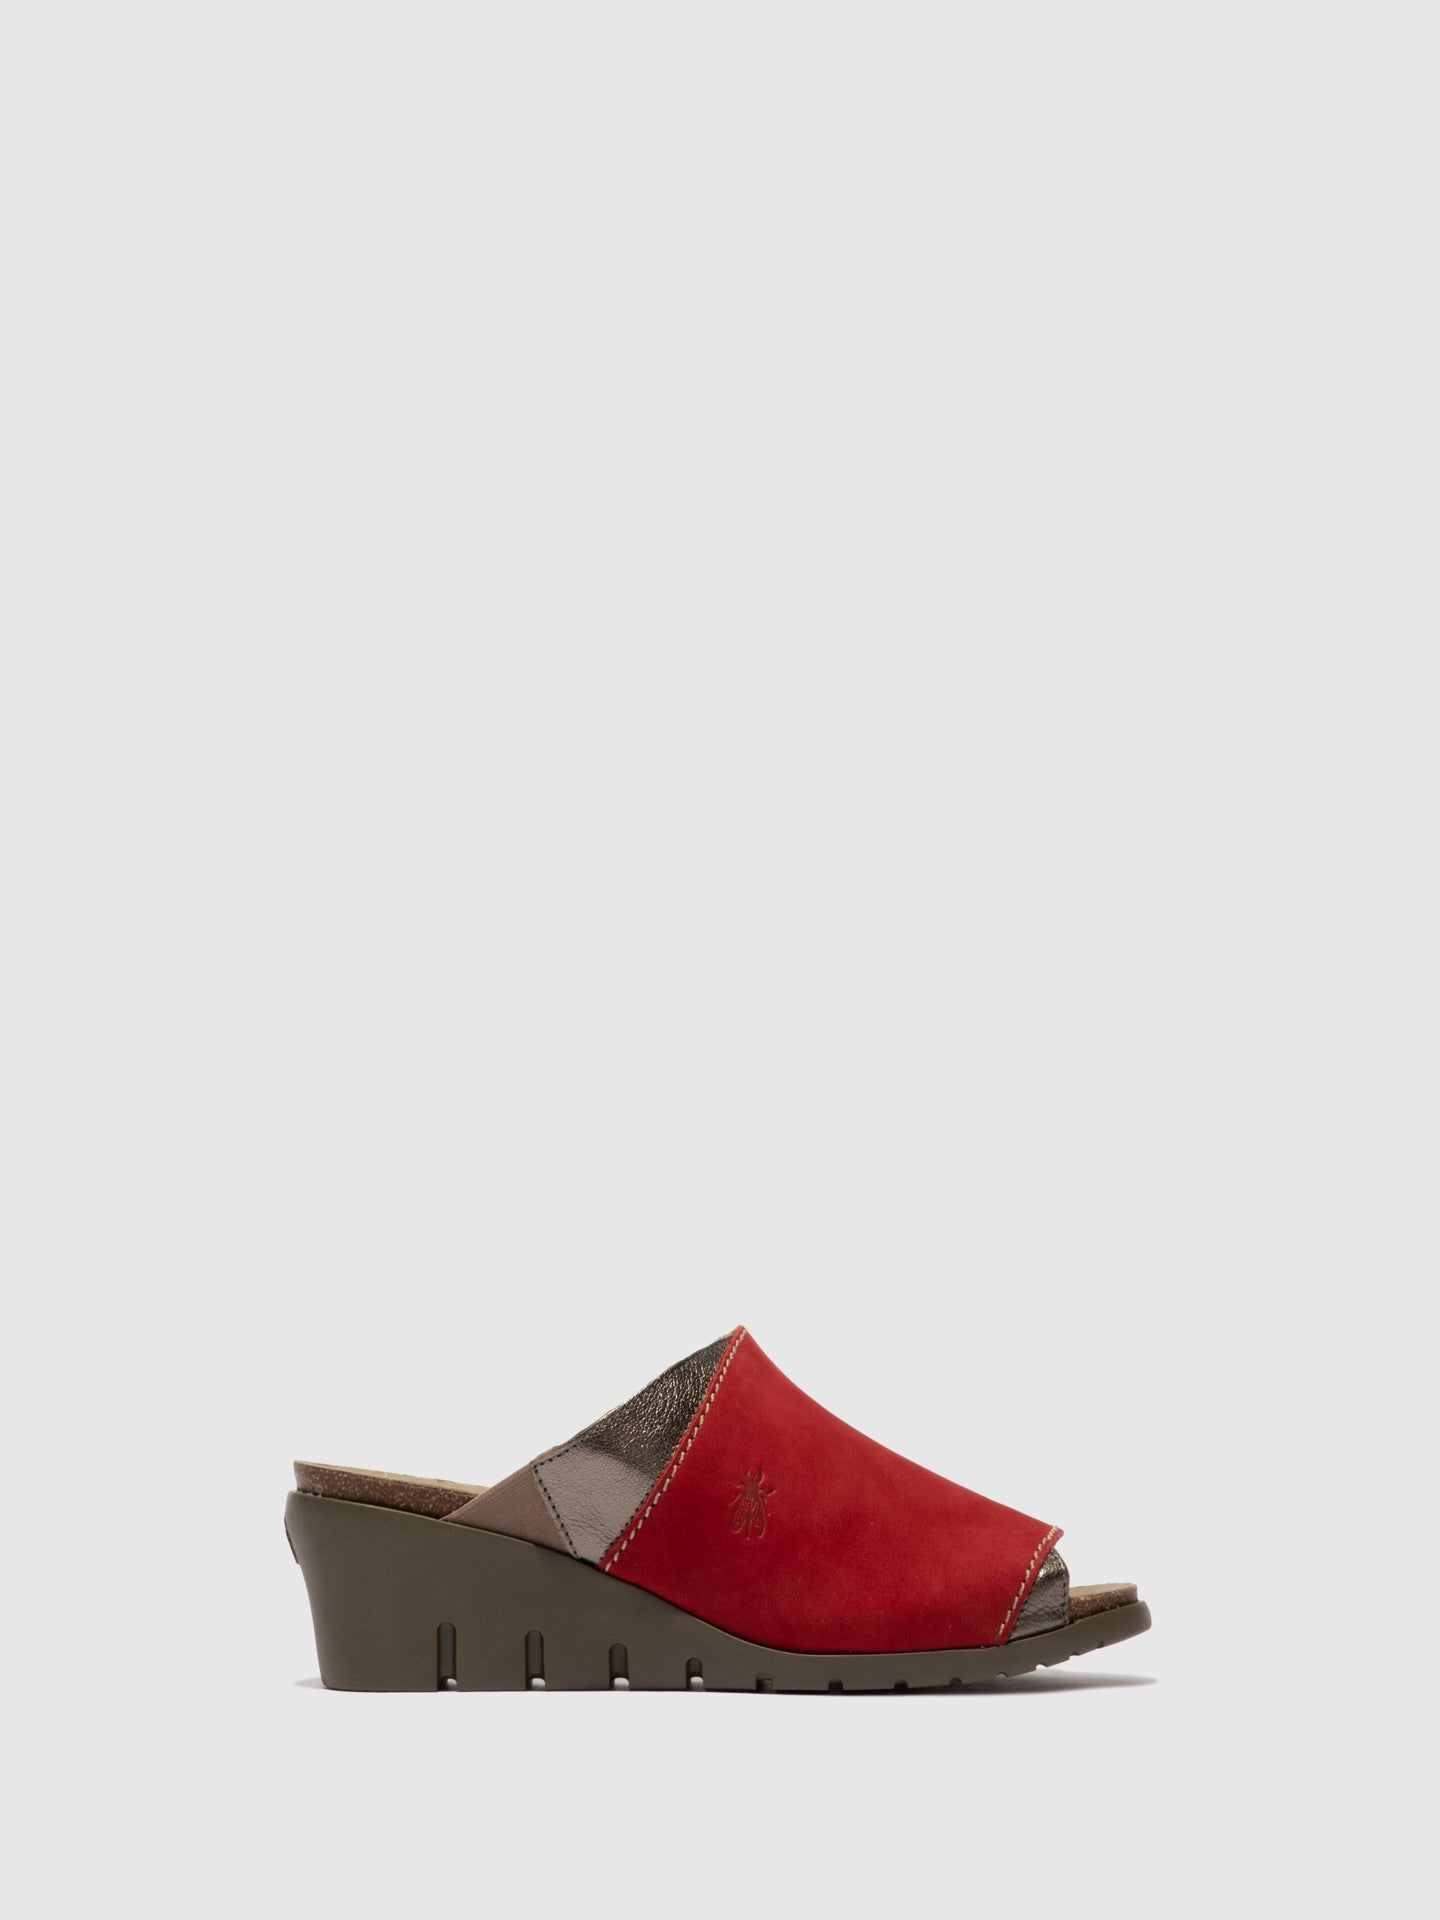 Fly London Open Toe Mules IDAR569FLY LIPSTICK RED/BRONZE